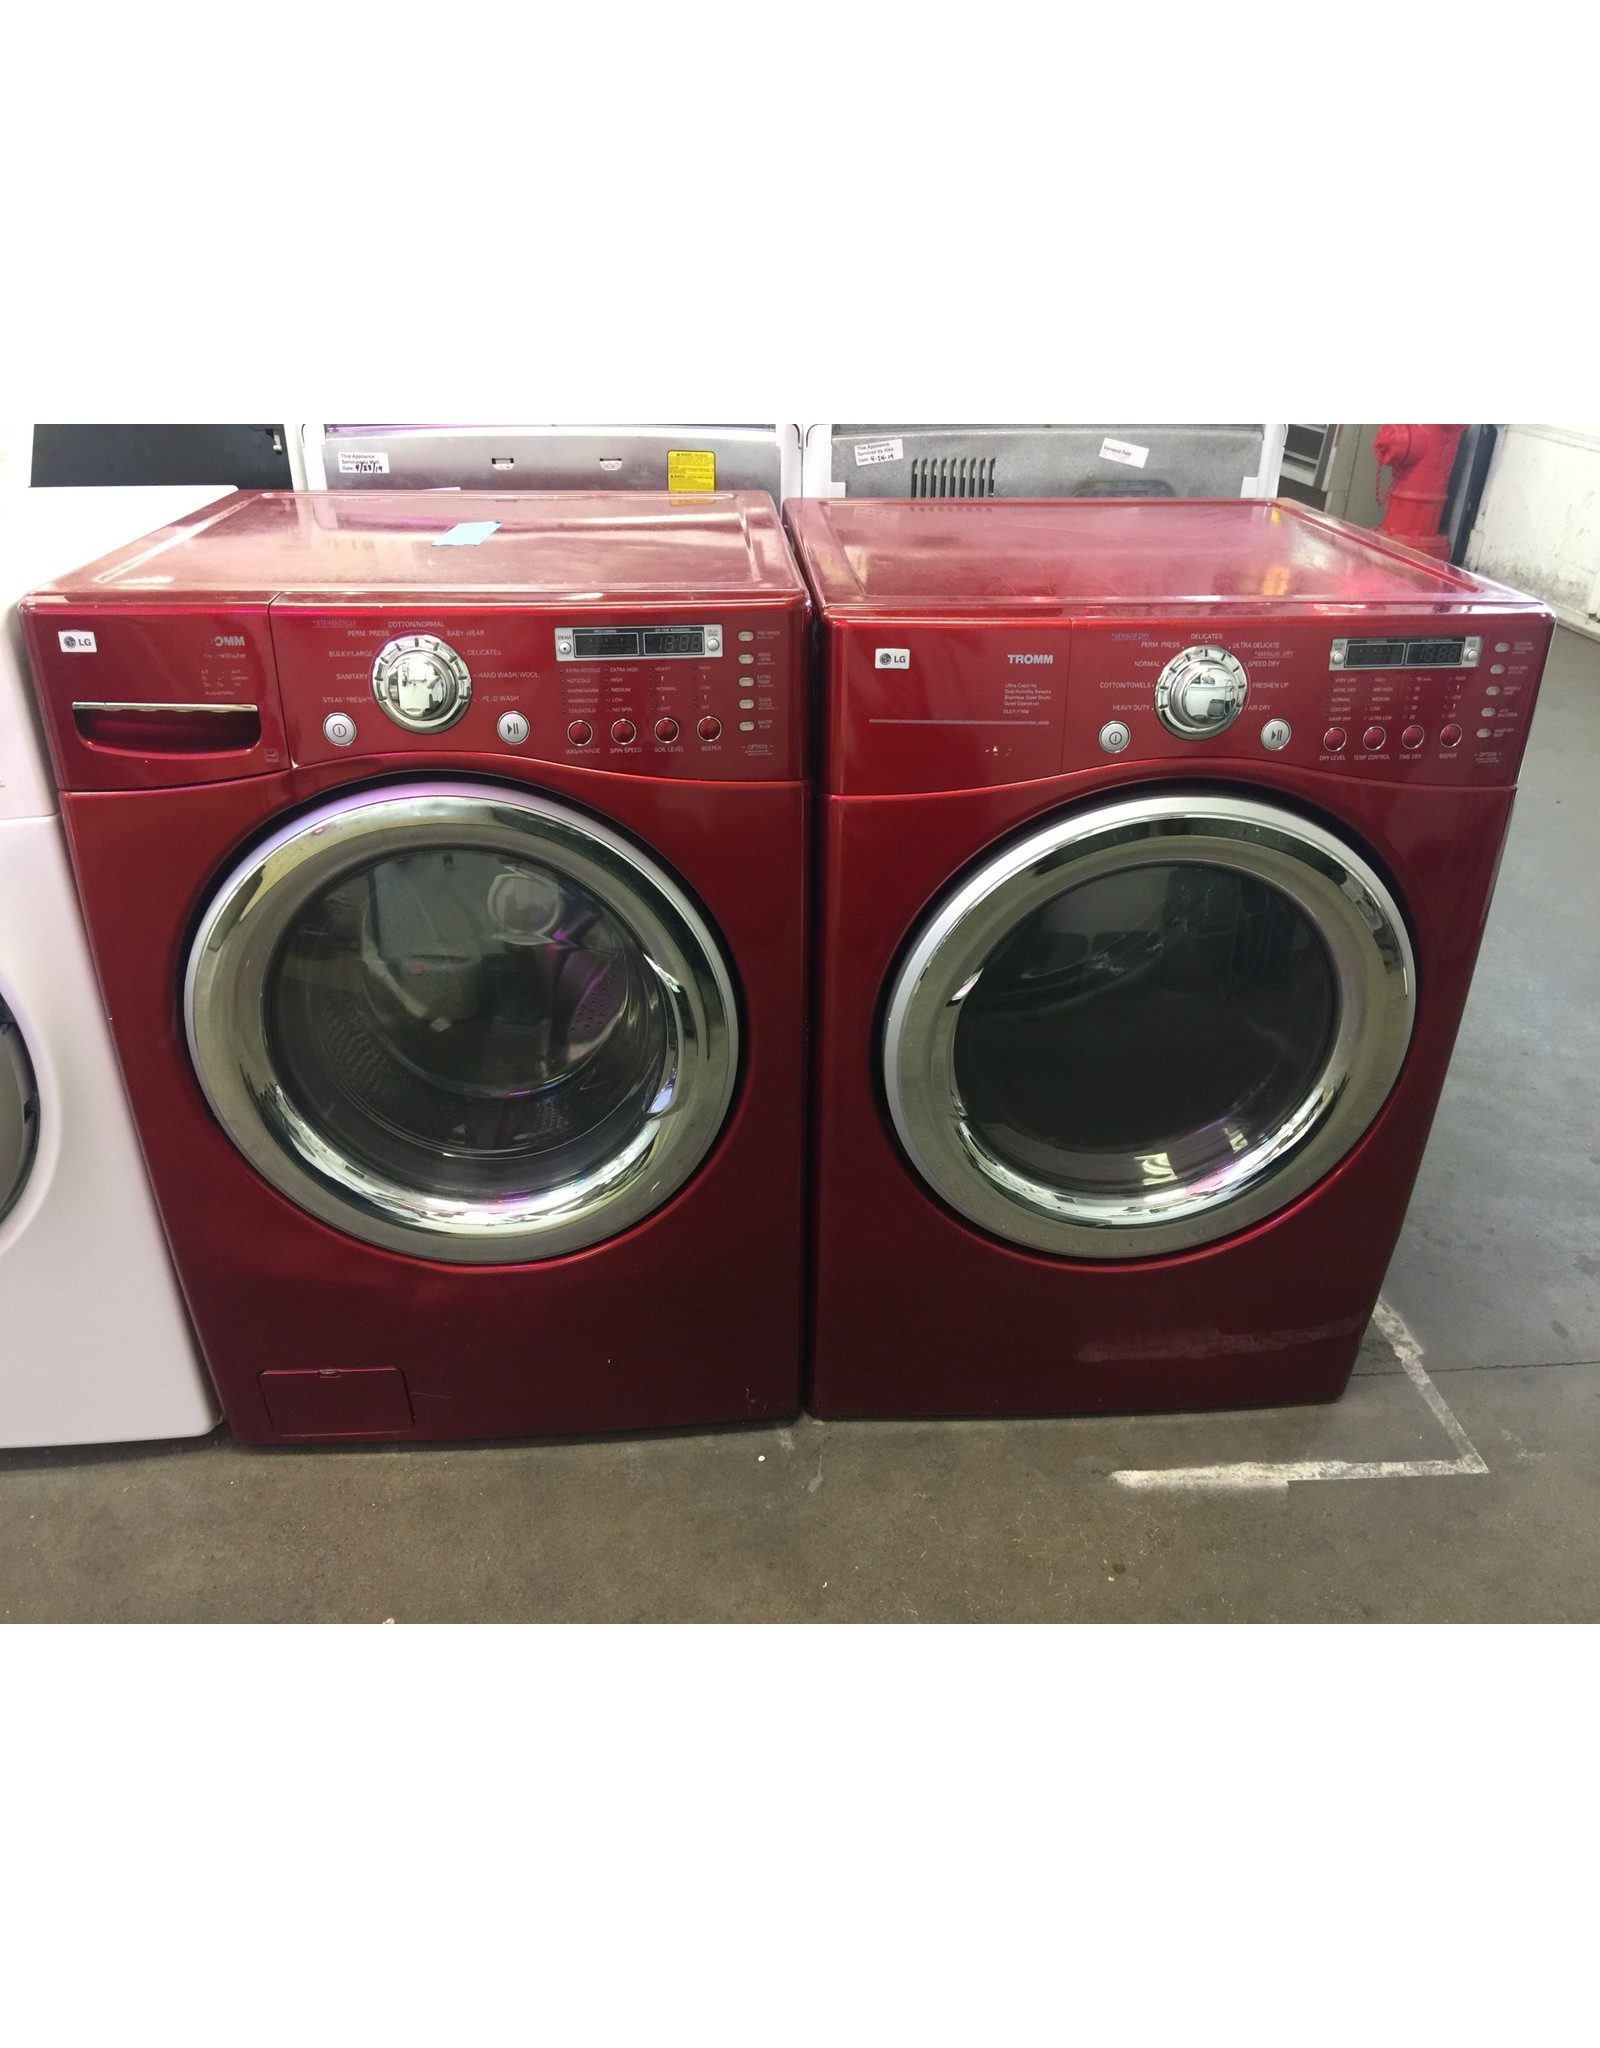 LG LG TROMM FRONT LOAD STEAM WASHING MACHINE IN RED